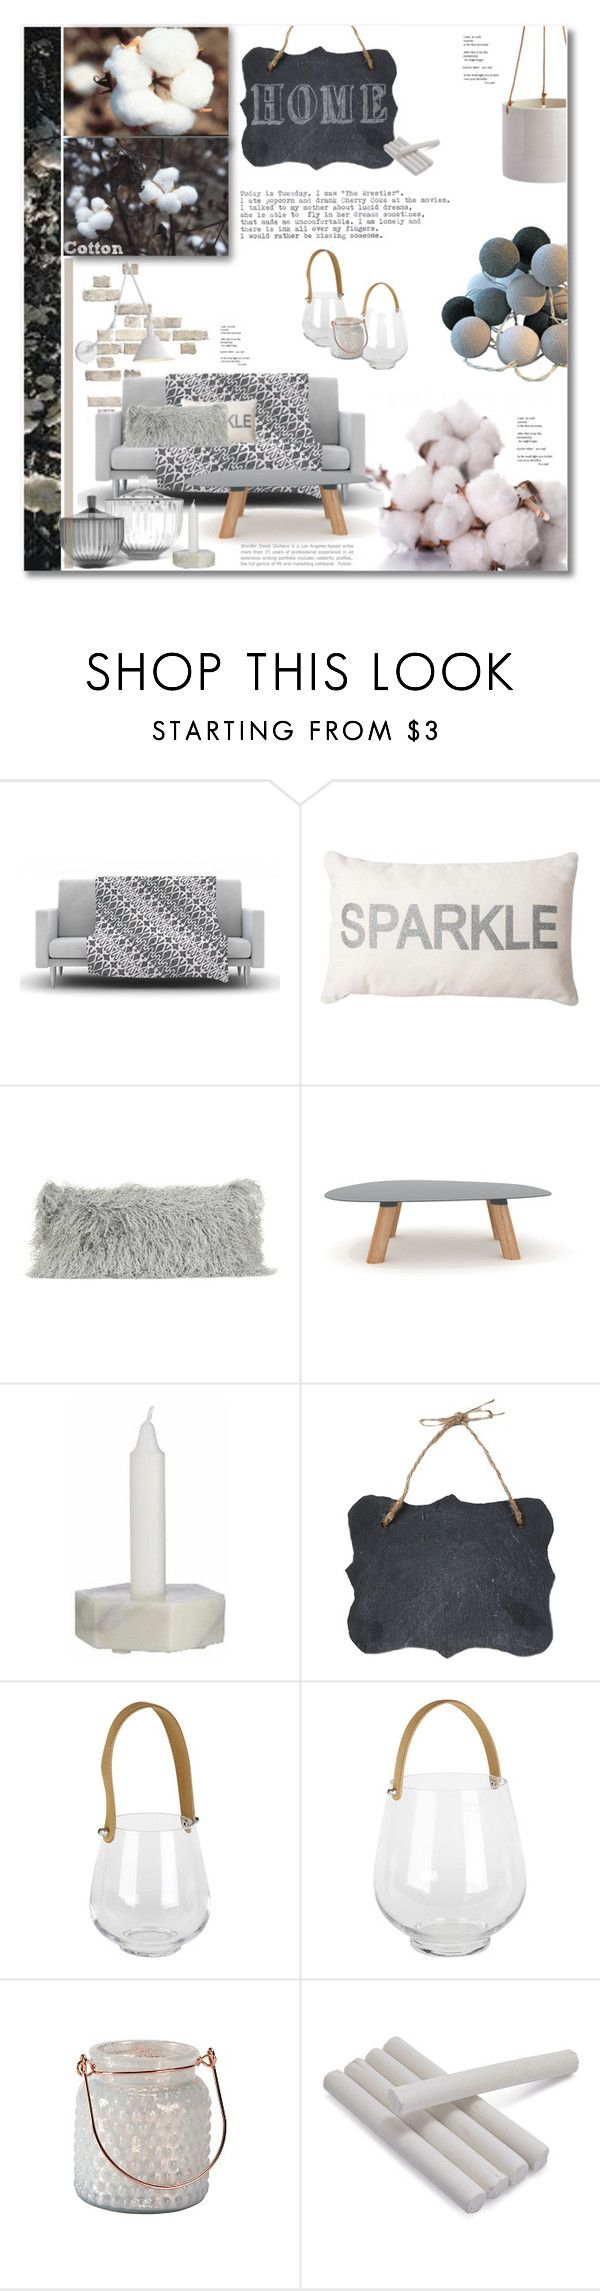 Natural Elements By Dittestegemejer On Polyvore Featuring Interior Interiors Design